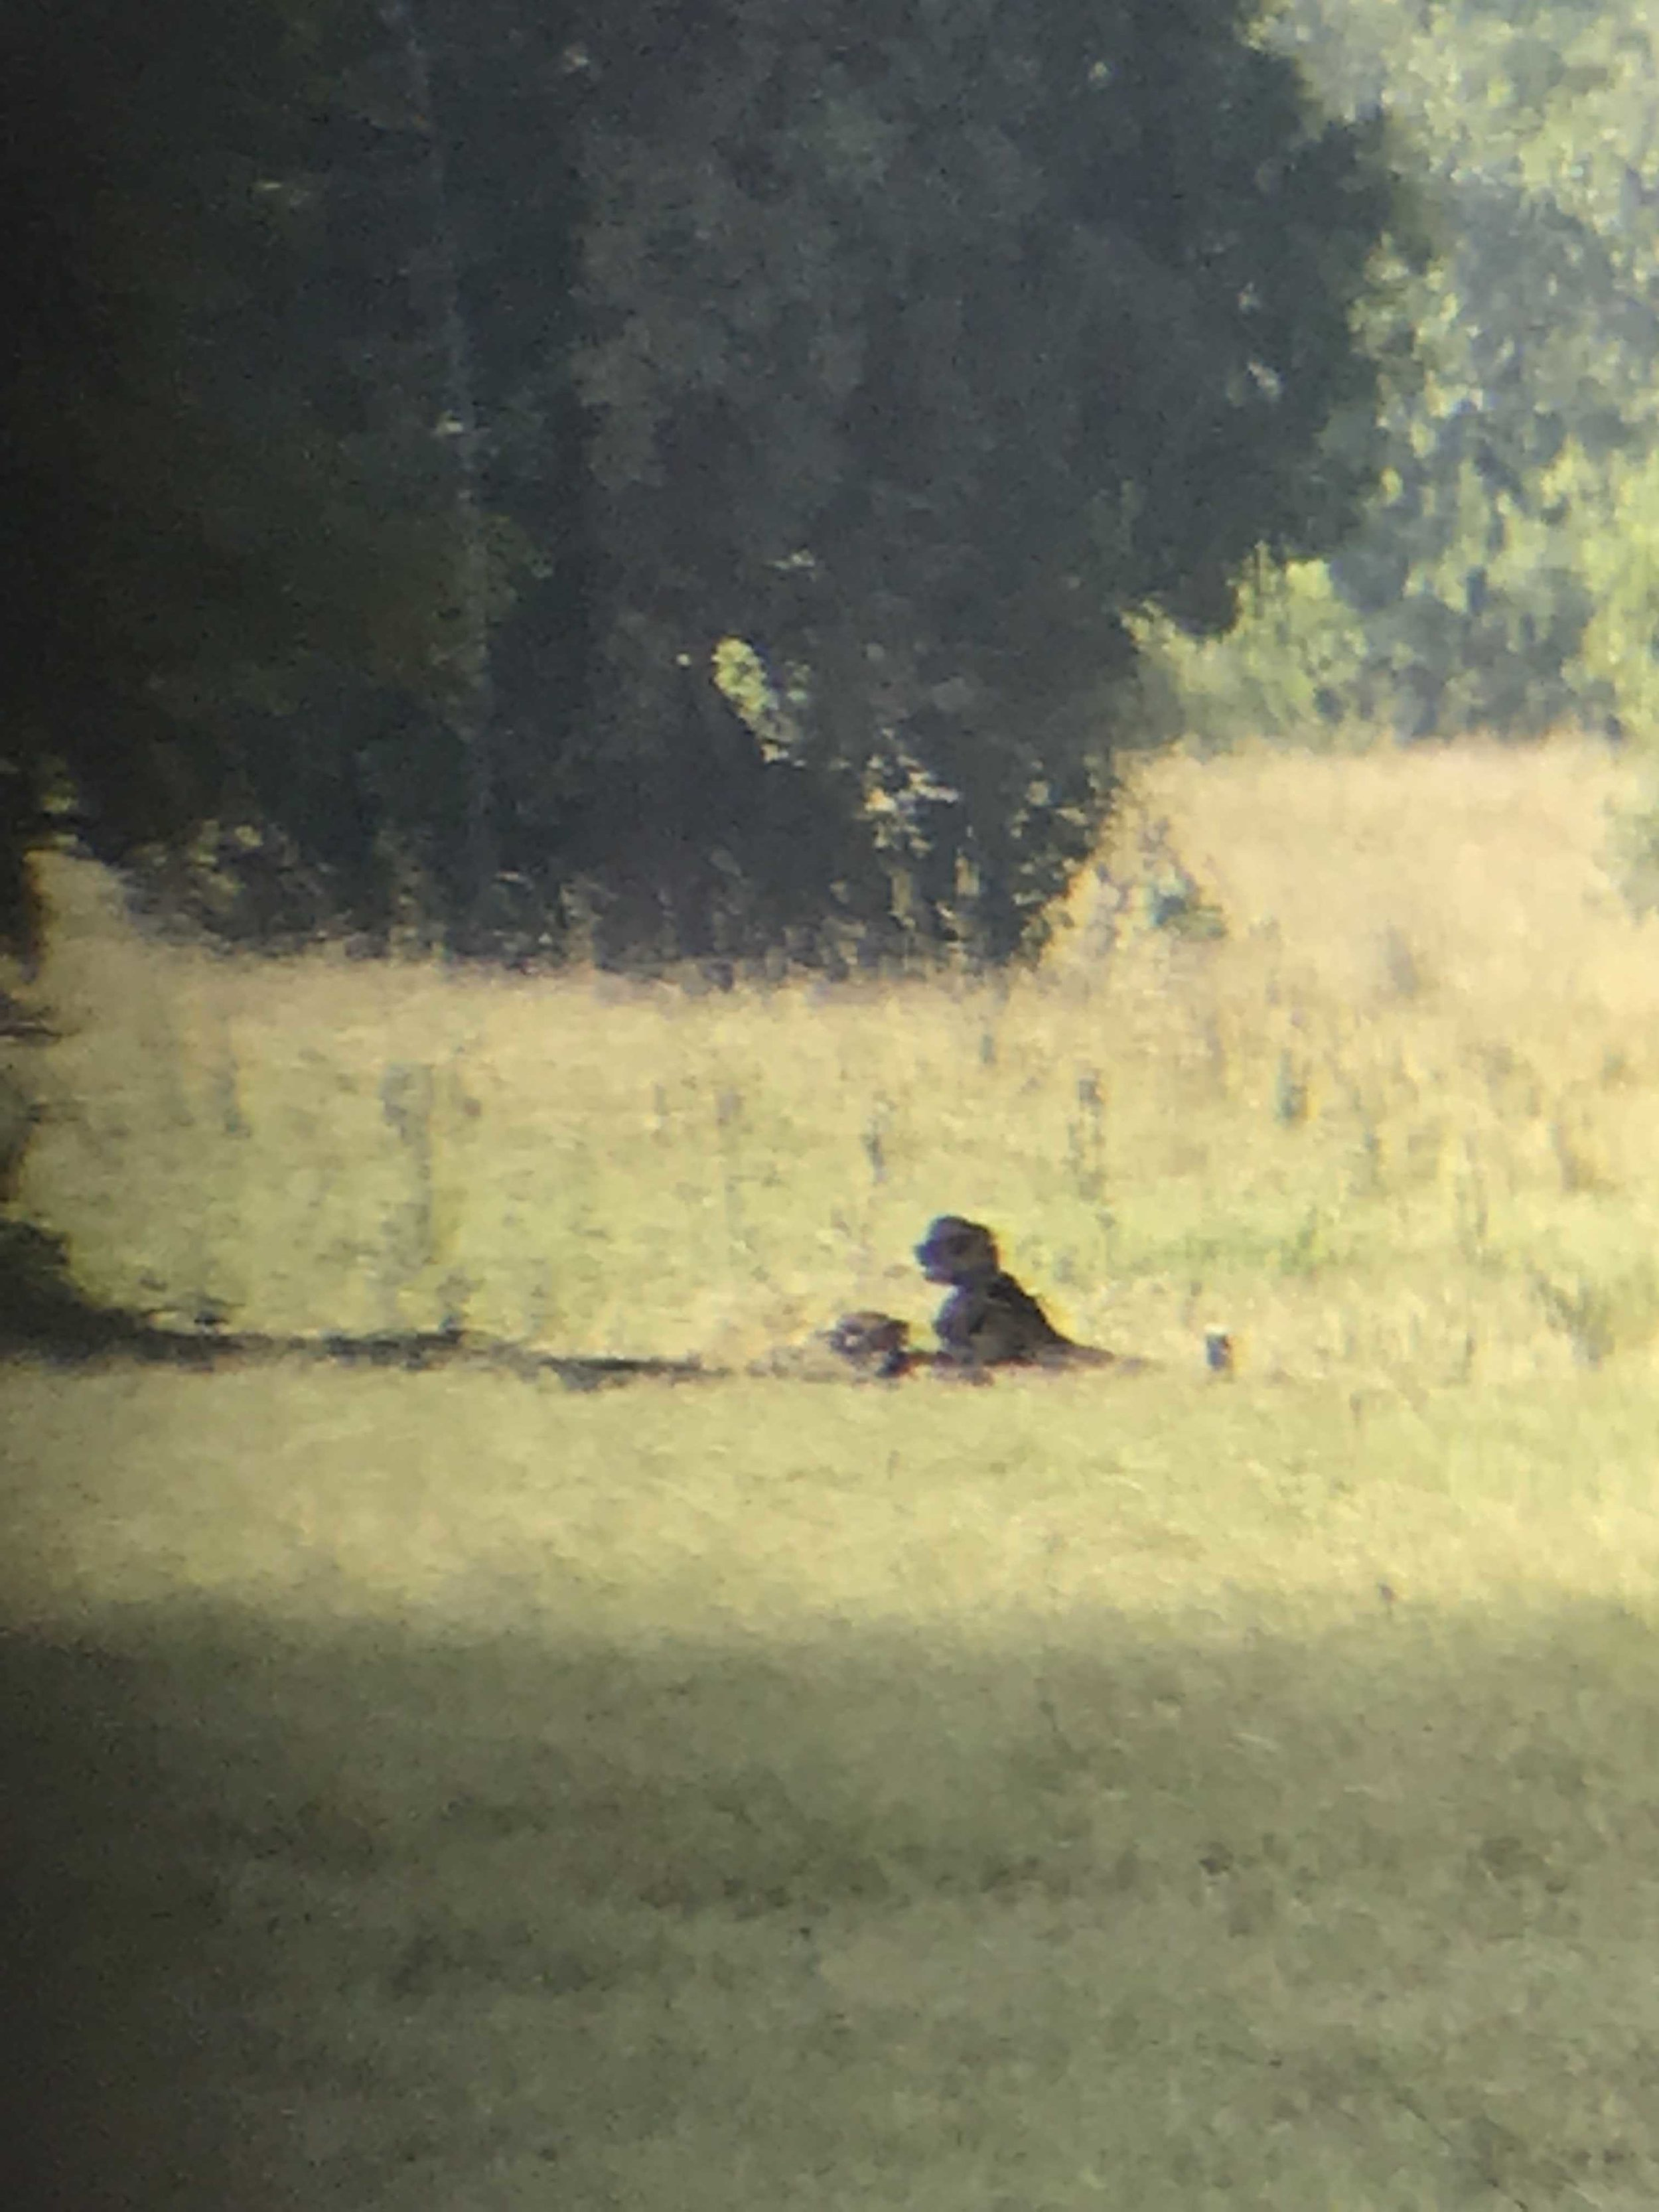 the cheetahs - iPhone pic X binoculars for top notch quality